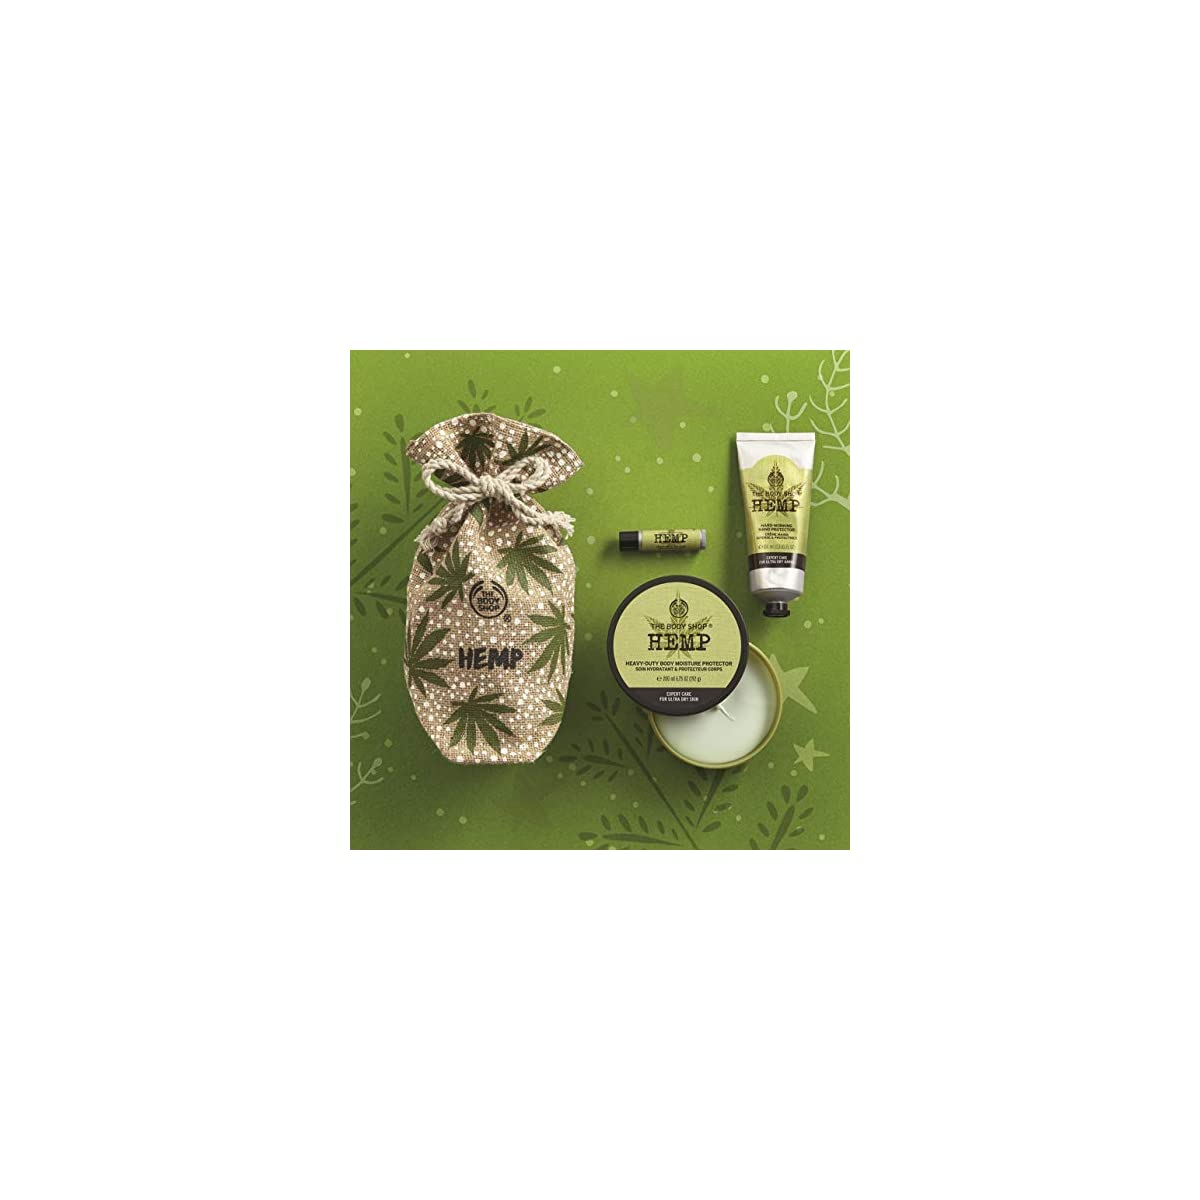 The-Body-Shop-Hemp-Expert-Moisture-Supplies-Gift-Set